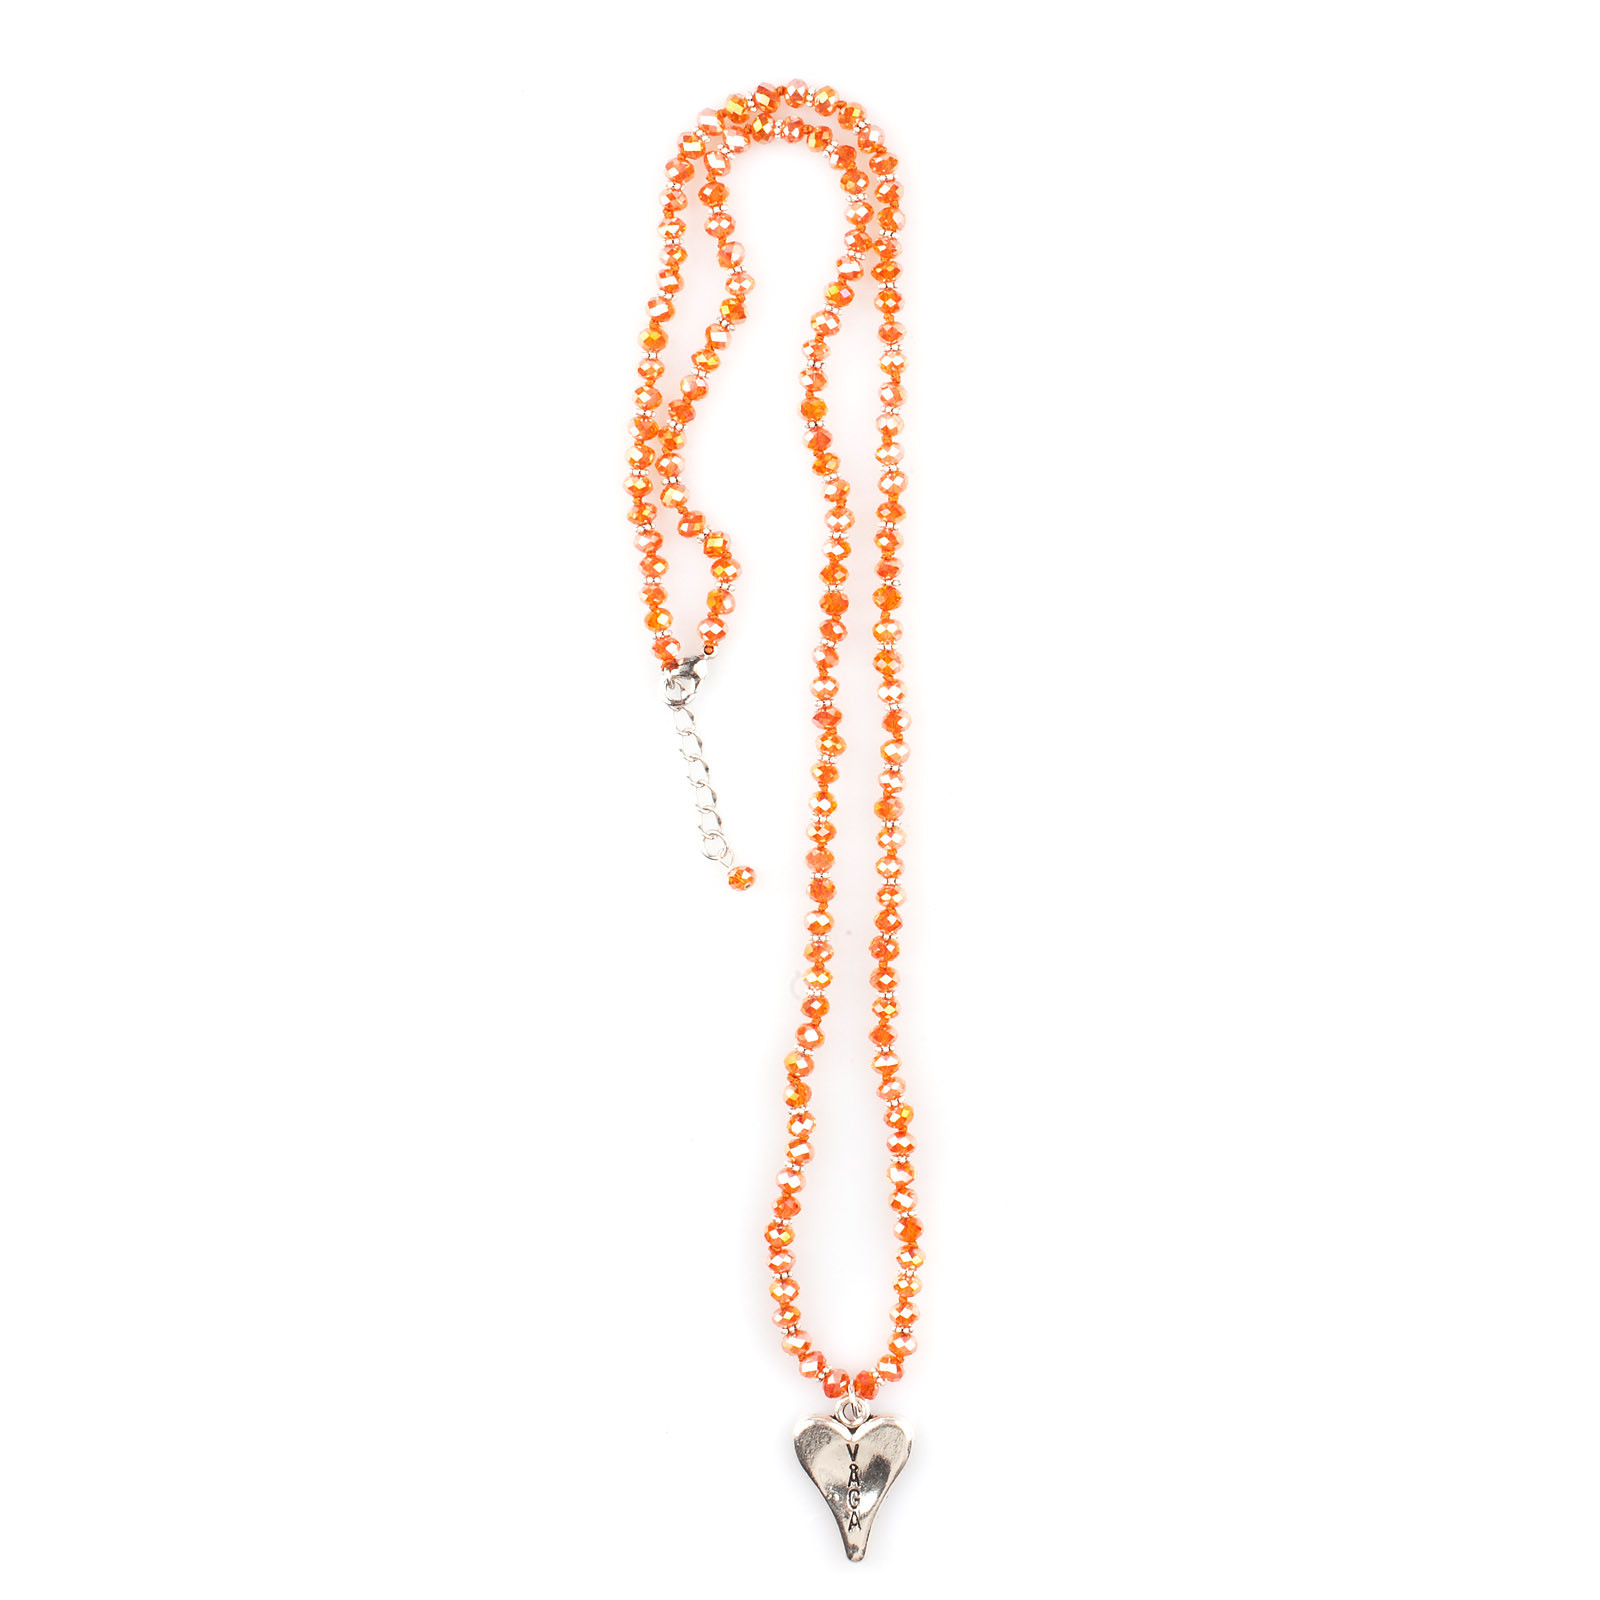 vaga-halsband-orange-lang